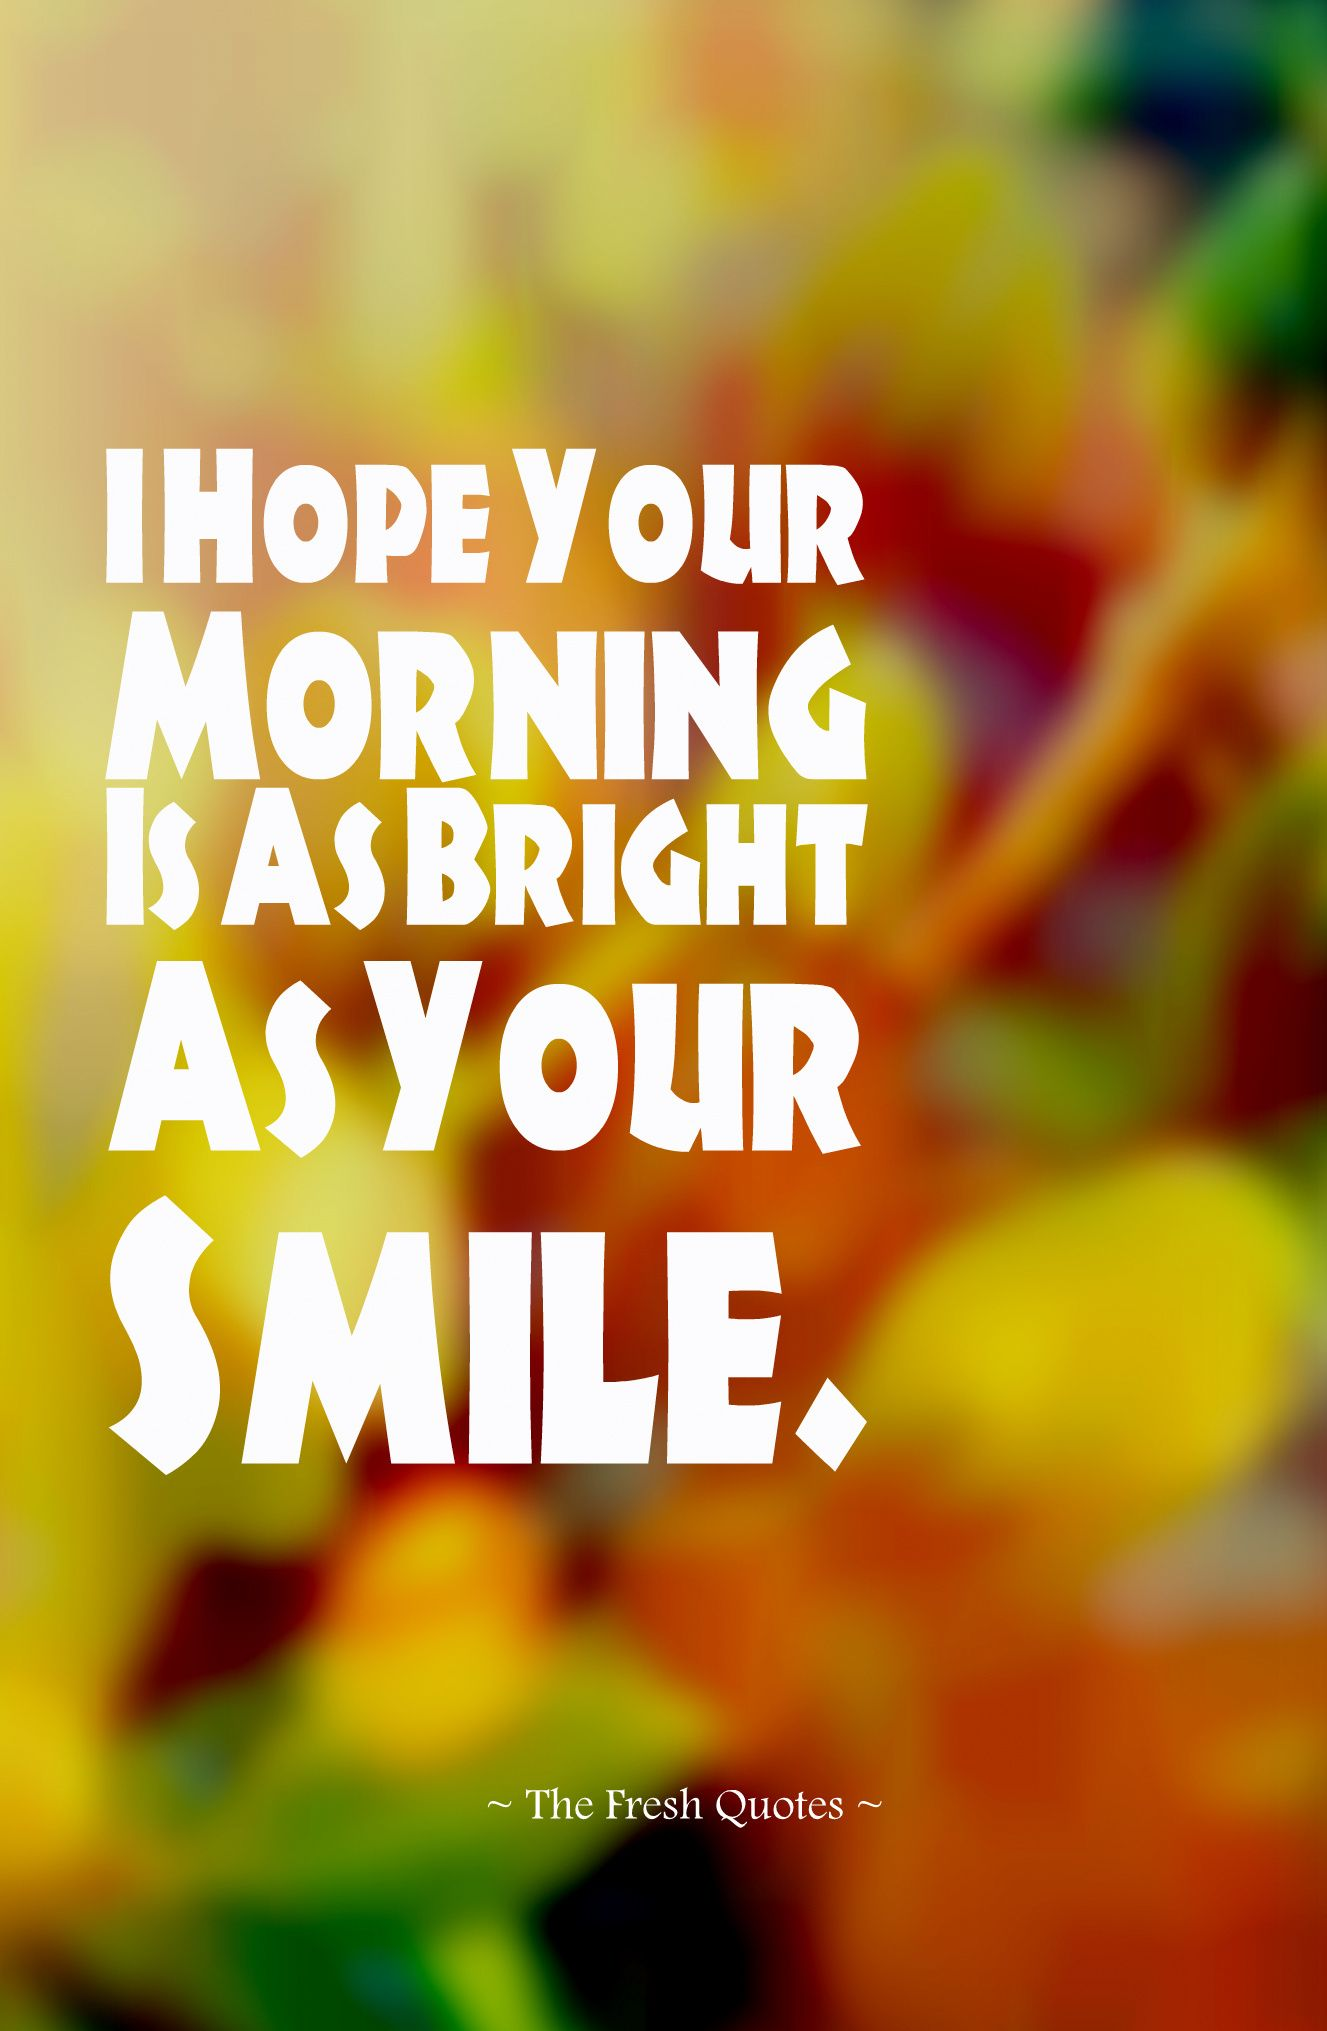 Good Morning Beautiful Your Night Download : Refreshing good morning quotes will make your day